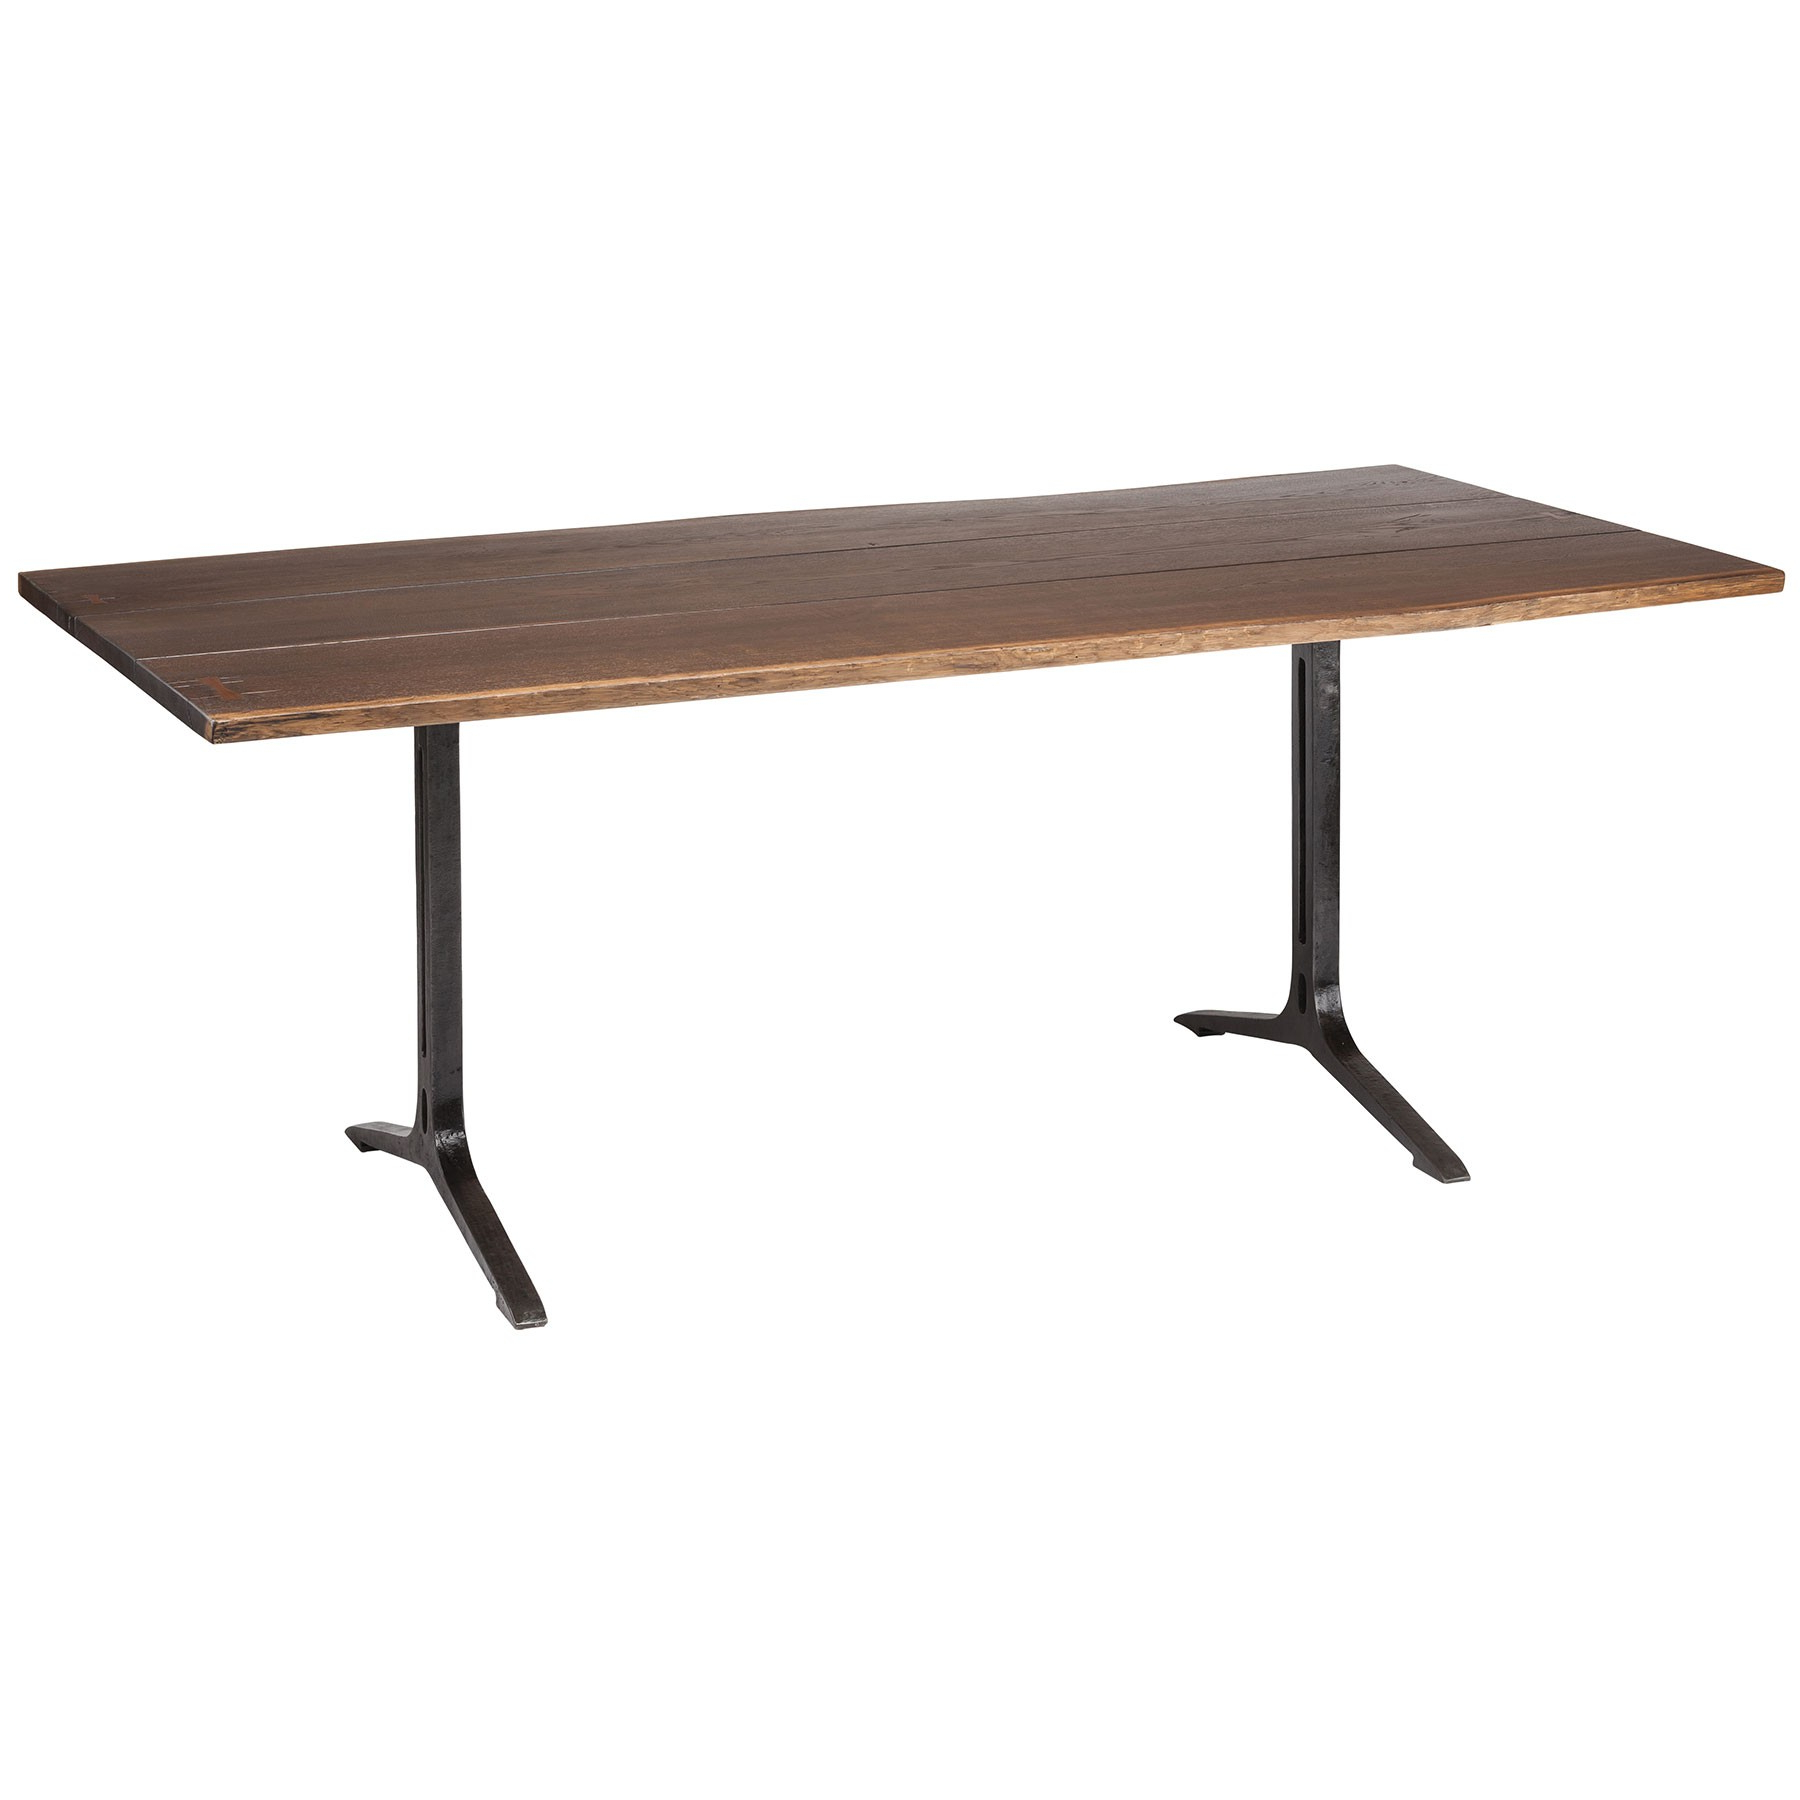 Trendy Samara Dining Table – Seared Oak / Black With Regard To Dining Tables In Smoked Seared Oak (Gallery 4 of 30)